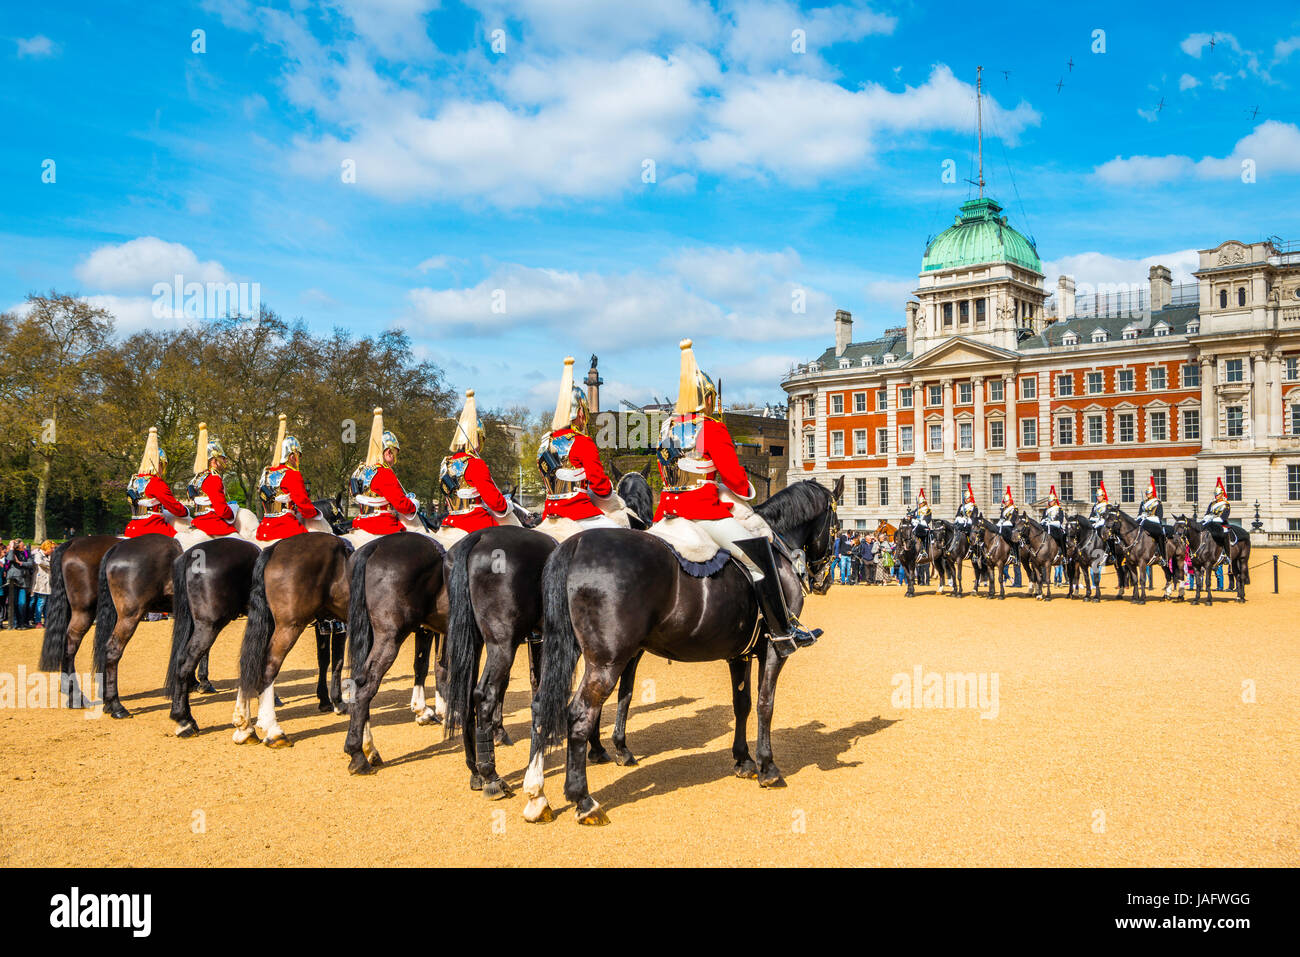 Royal Guards in red uniform on horses, The Lifeguards, The Blues and Royals, Household Cavalry Mounted Regiment, Stock Photo